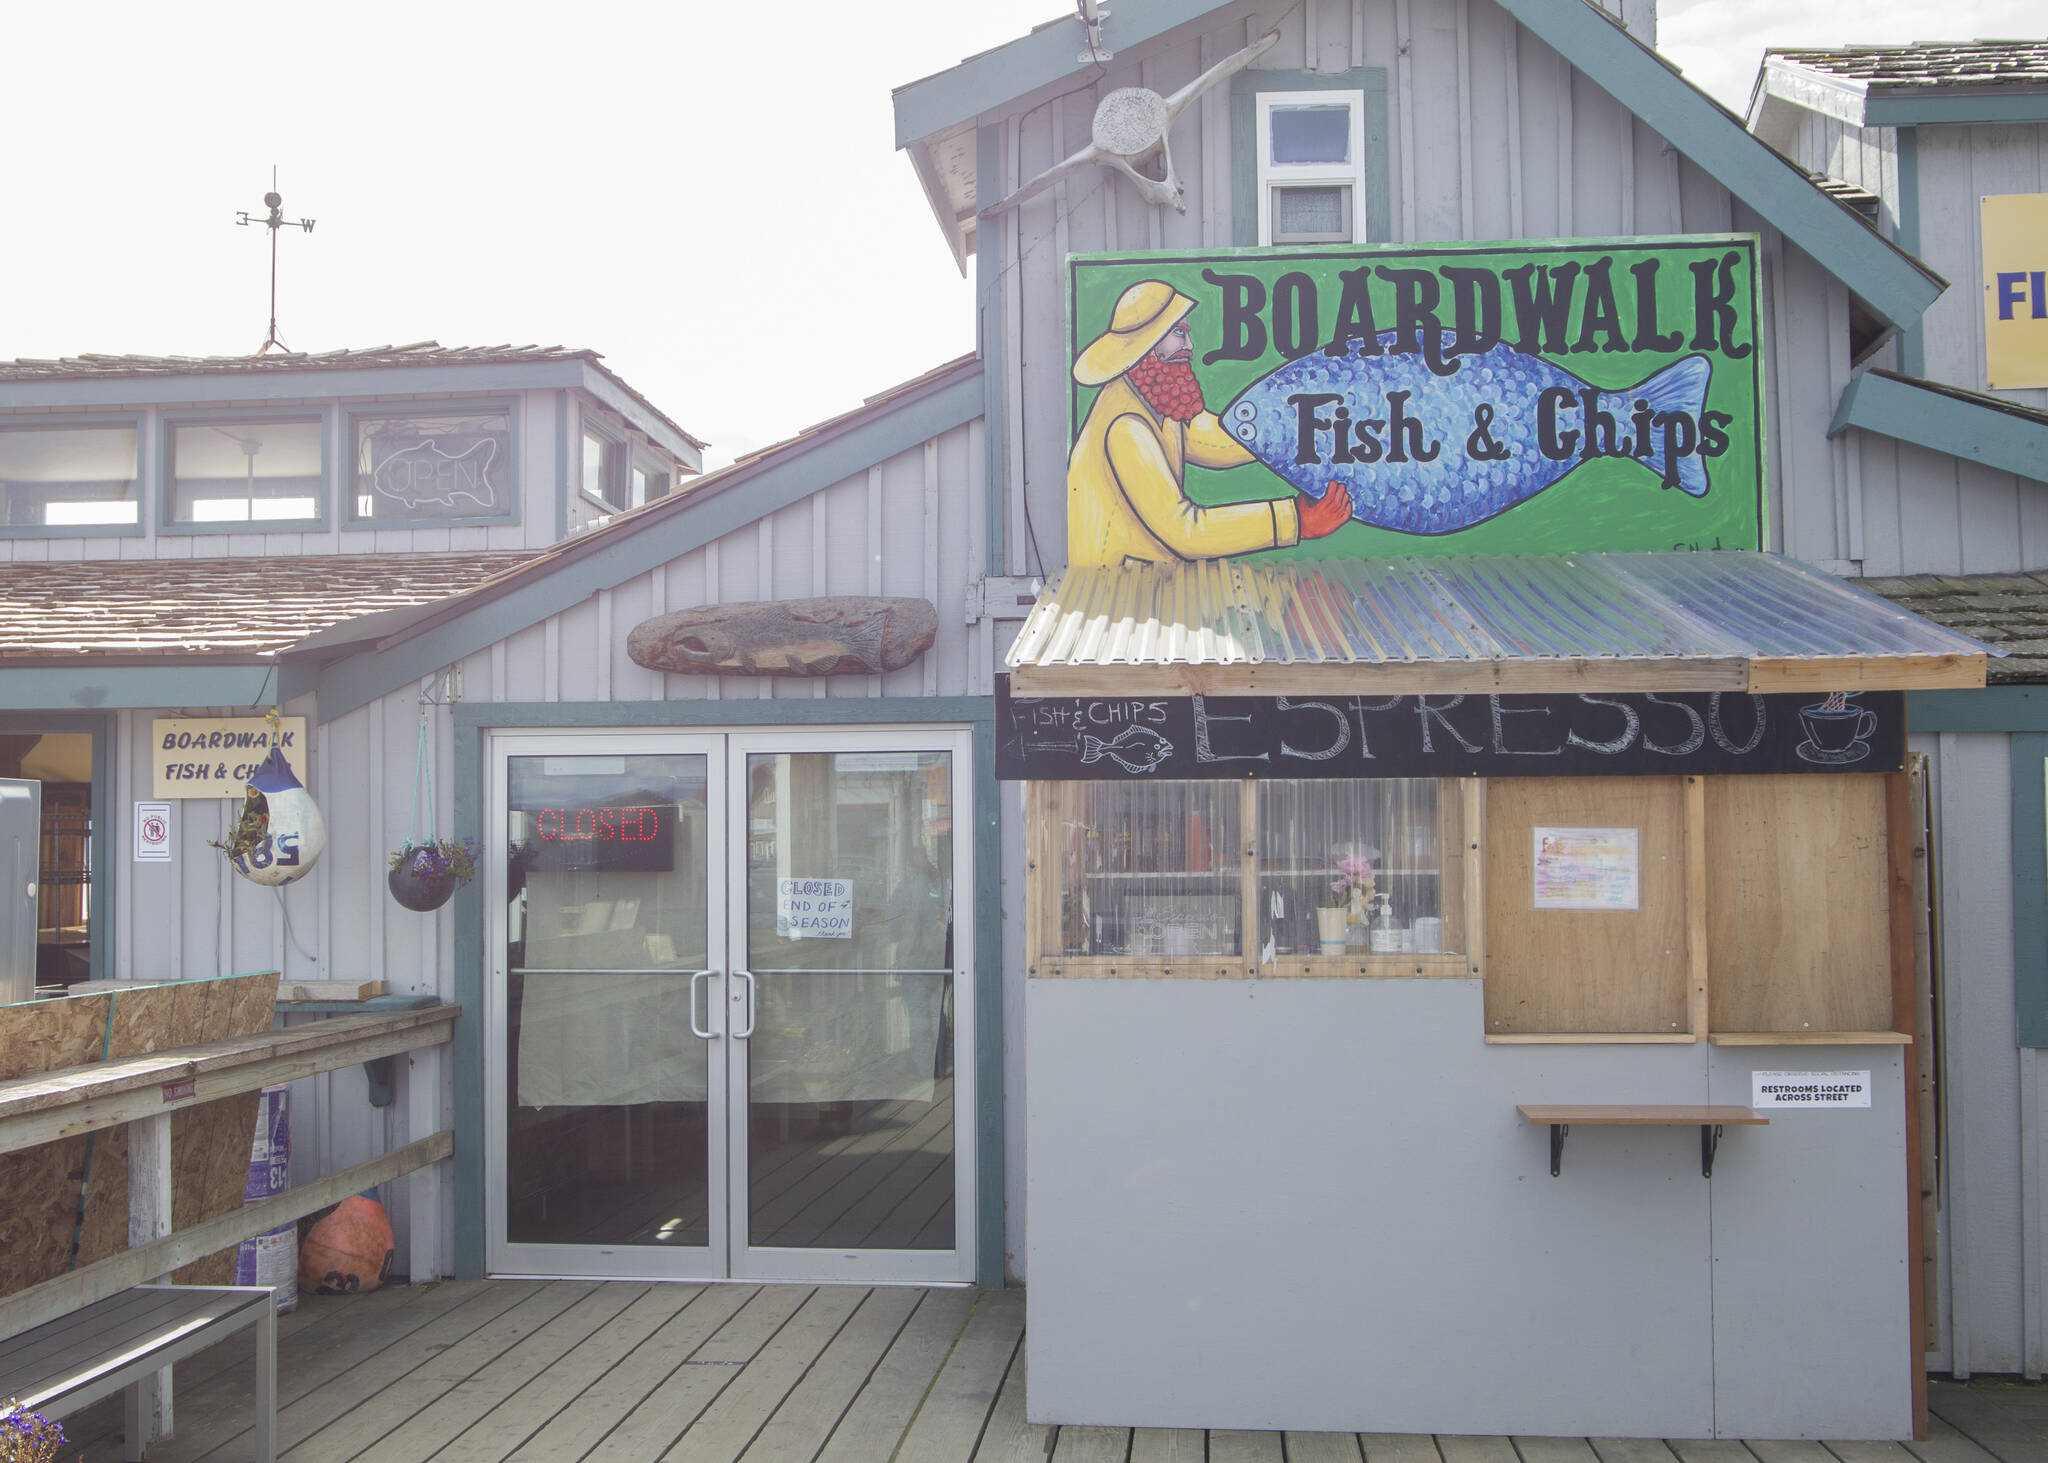 Boardwalk Fish and Chips is now closed for the season. The restaurant is boarded up and the workers are ready for a break. (Photo by Sarah Knapp/Homer News)